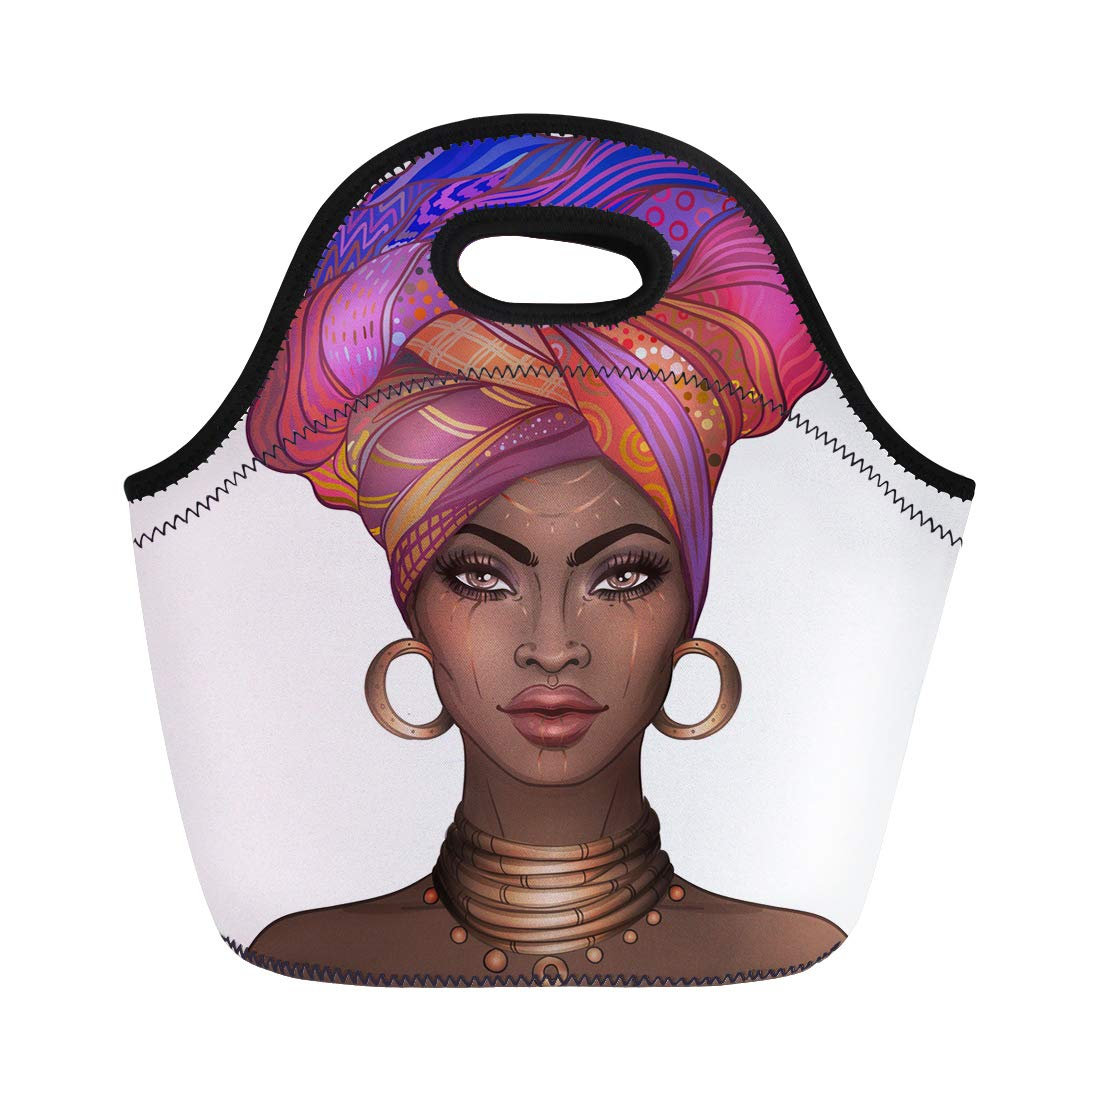 Semtomn Neoprene Lunch Tote Bag African American Pretty Girl Raster of Black Woman Glossy Reusable Cooler Bags Insulated Thermal Picnic Handbag for Travel,School,Outdoors, Work